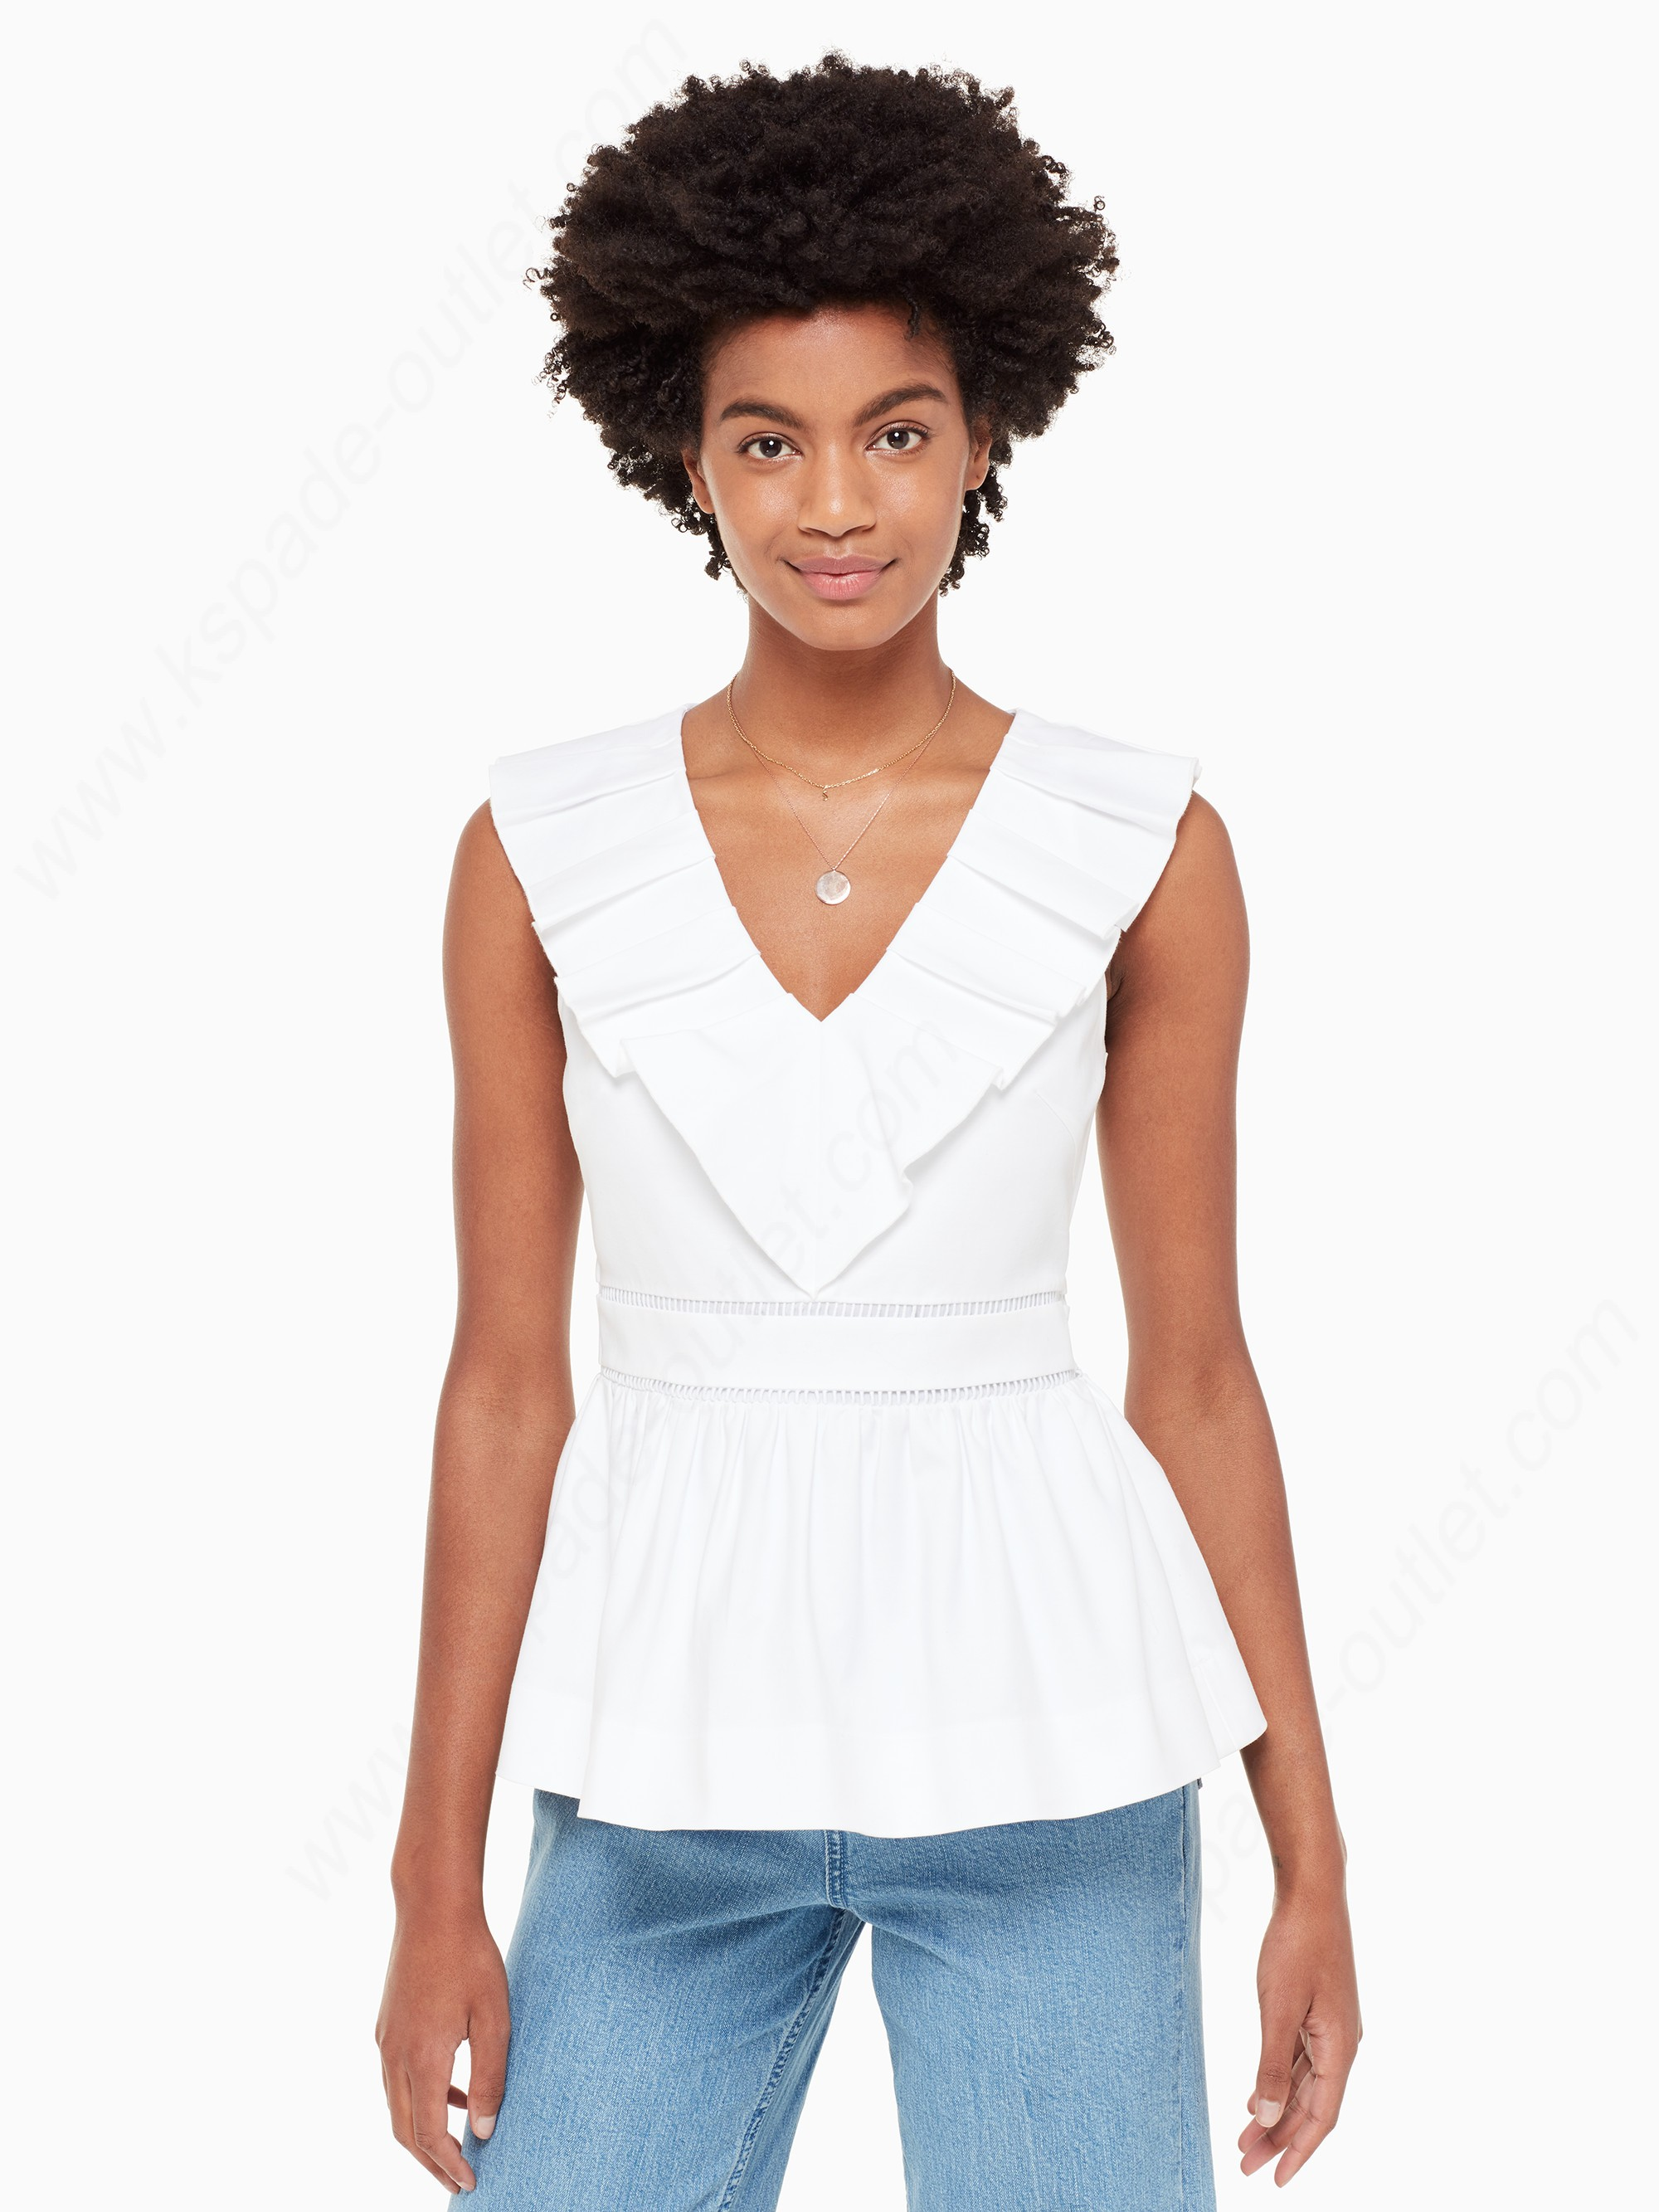 Kate Spade Woman Clothing Ruffle Neck Top - Kate Spade Woman Clothing Ruffle Neck Top